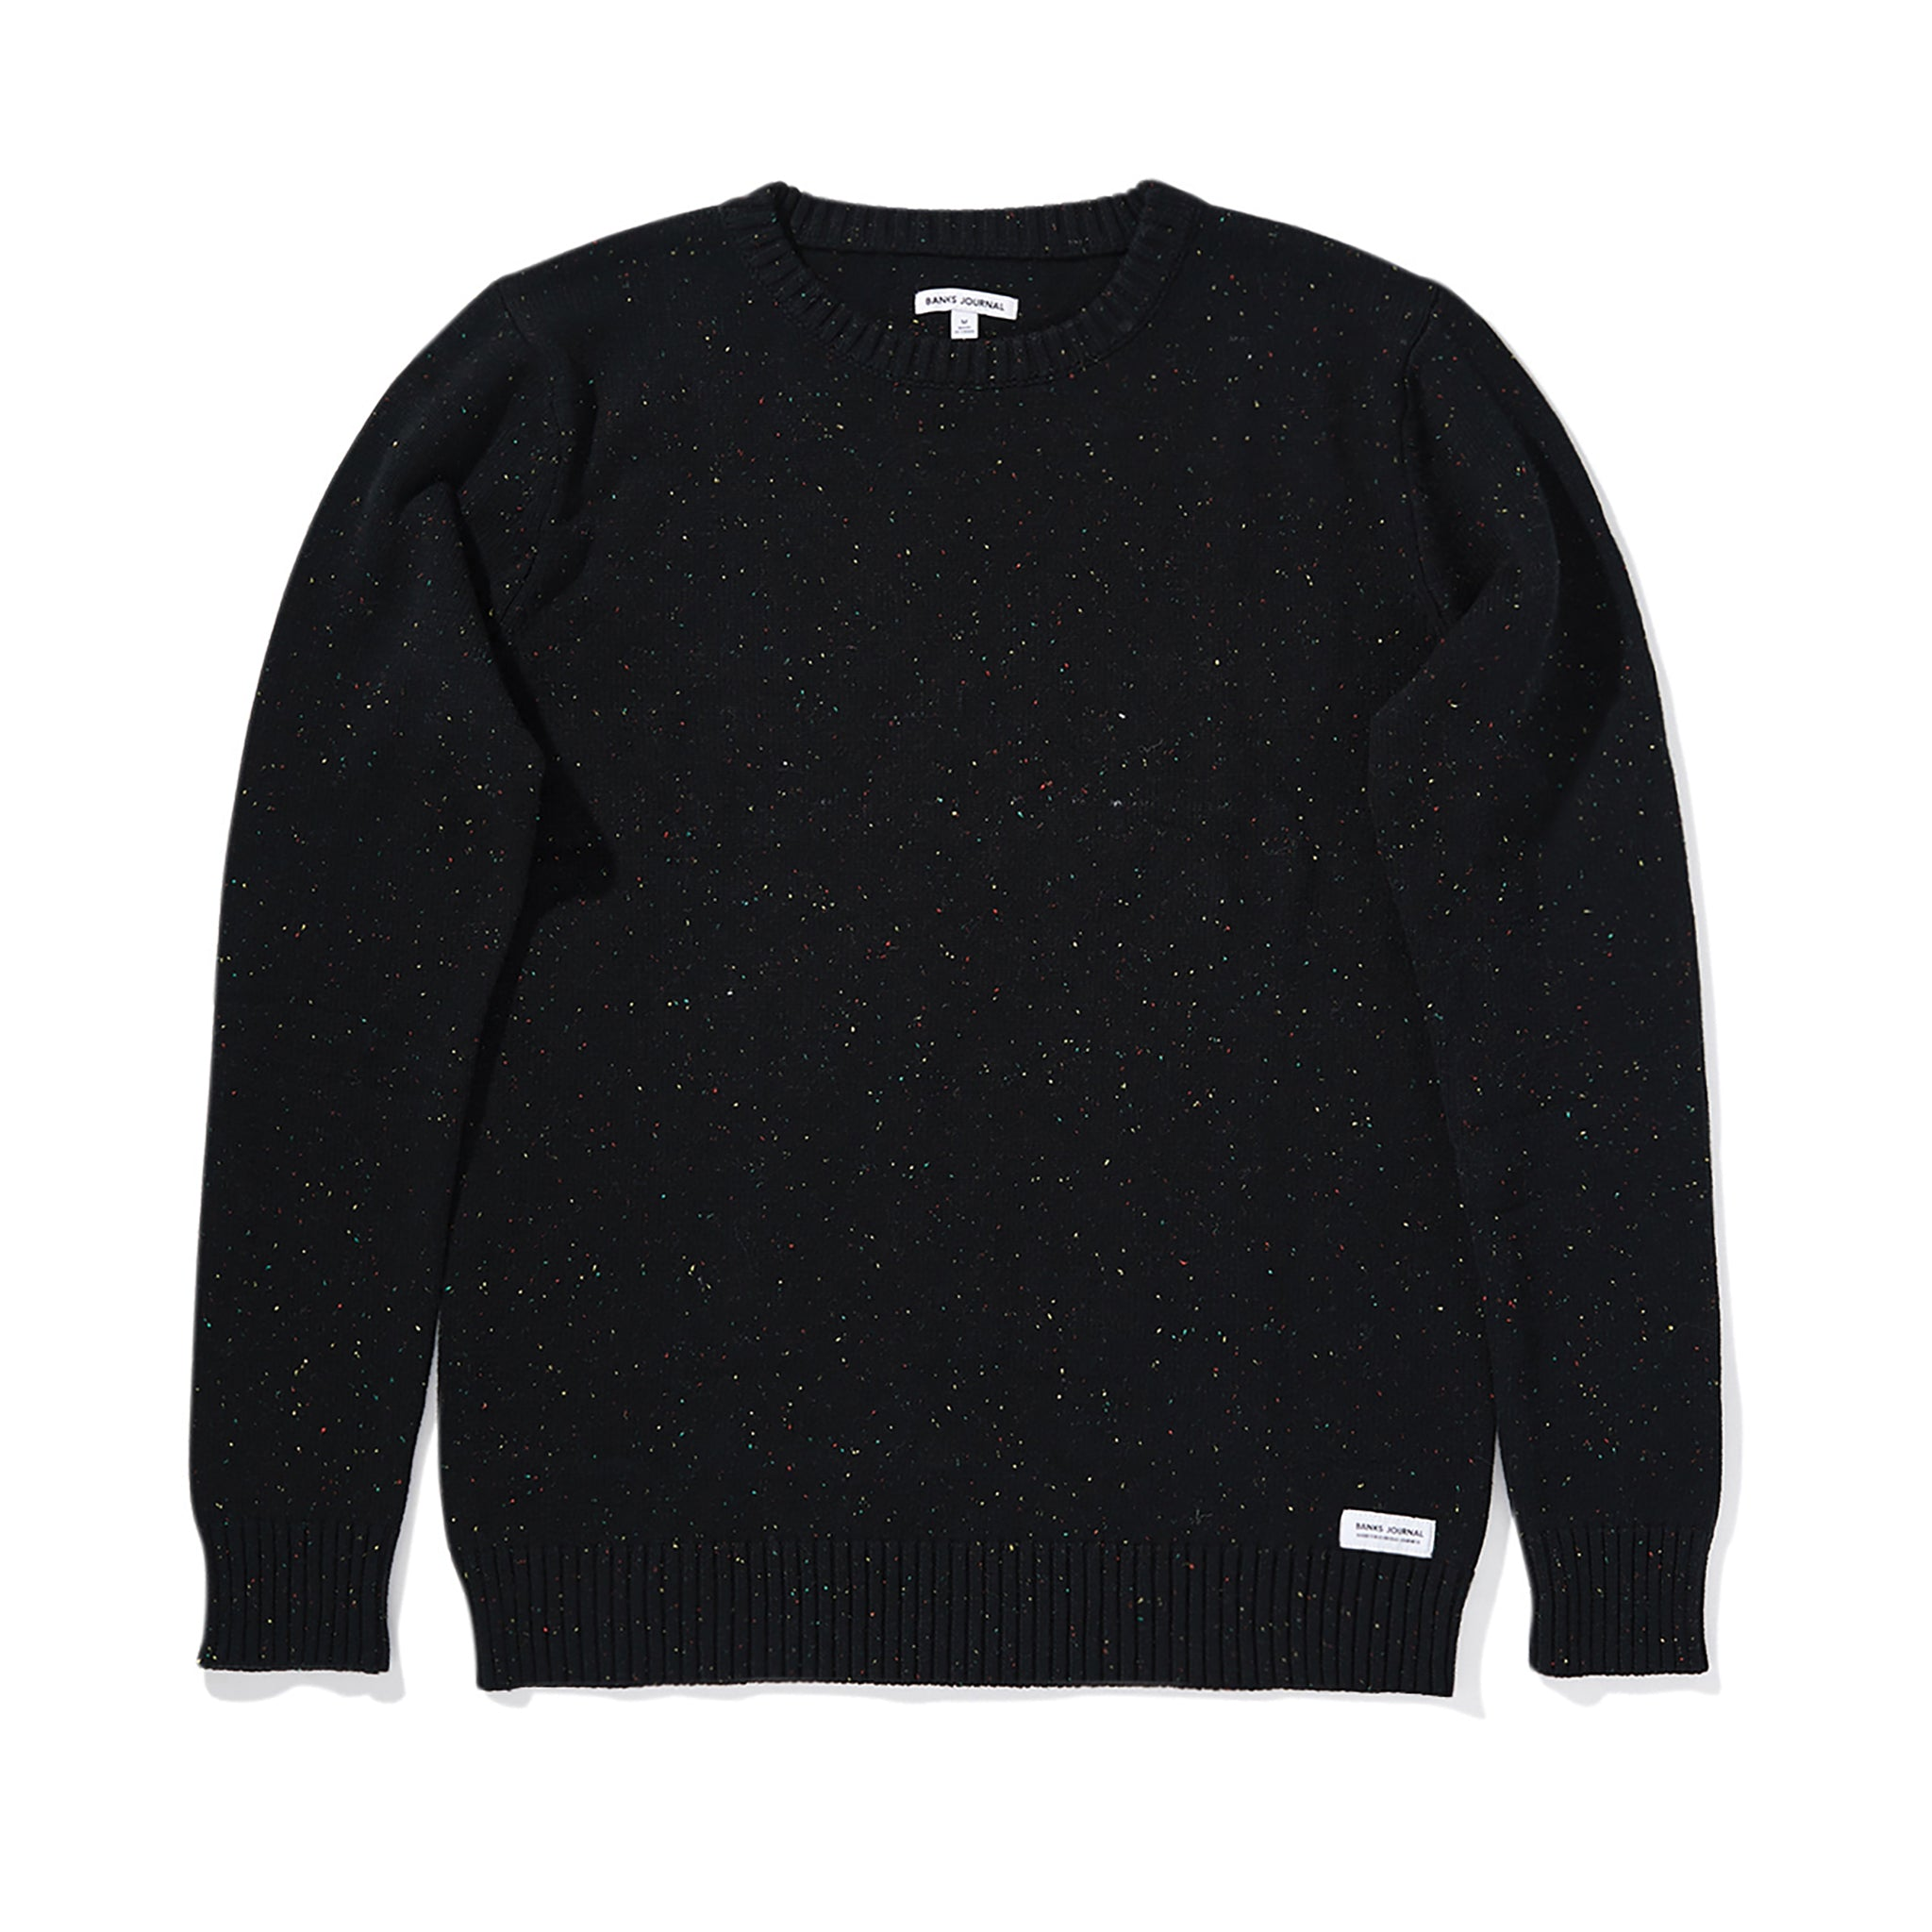 Nocturn Knit Pullover